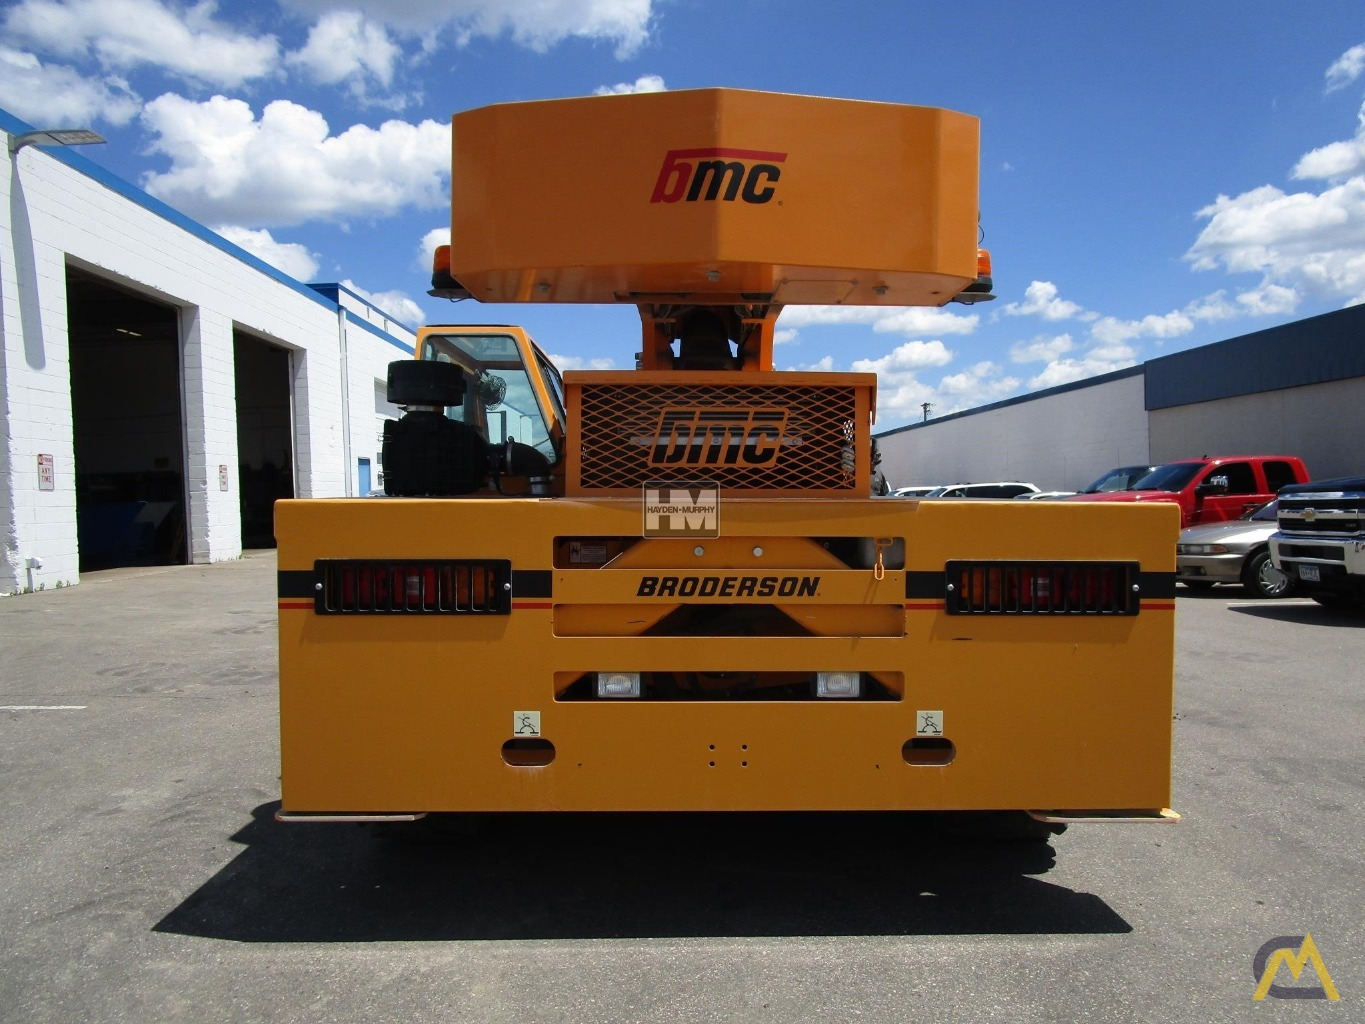 Broderson IC-200-2H 15-ton Industrial Carry Deck Crane 3